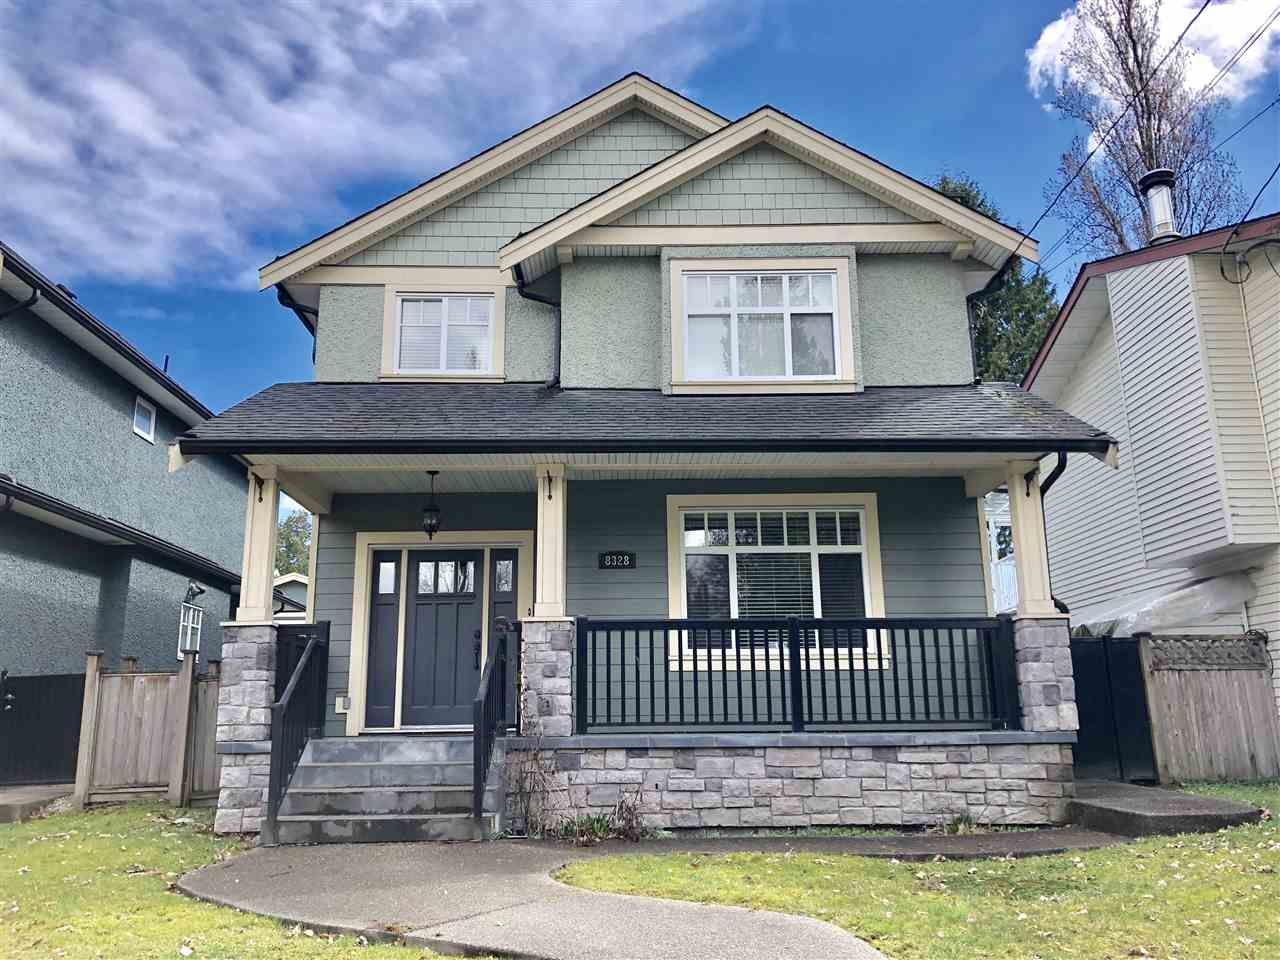 Main Photo: 8328 16TH Avenue in Burnaby: East Burnaby House for sale (Burnaby East)  : MLS®# R2356195